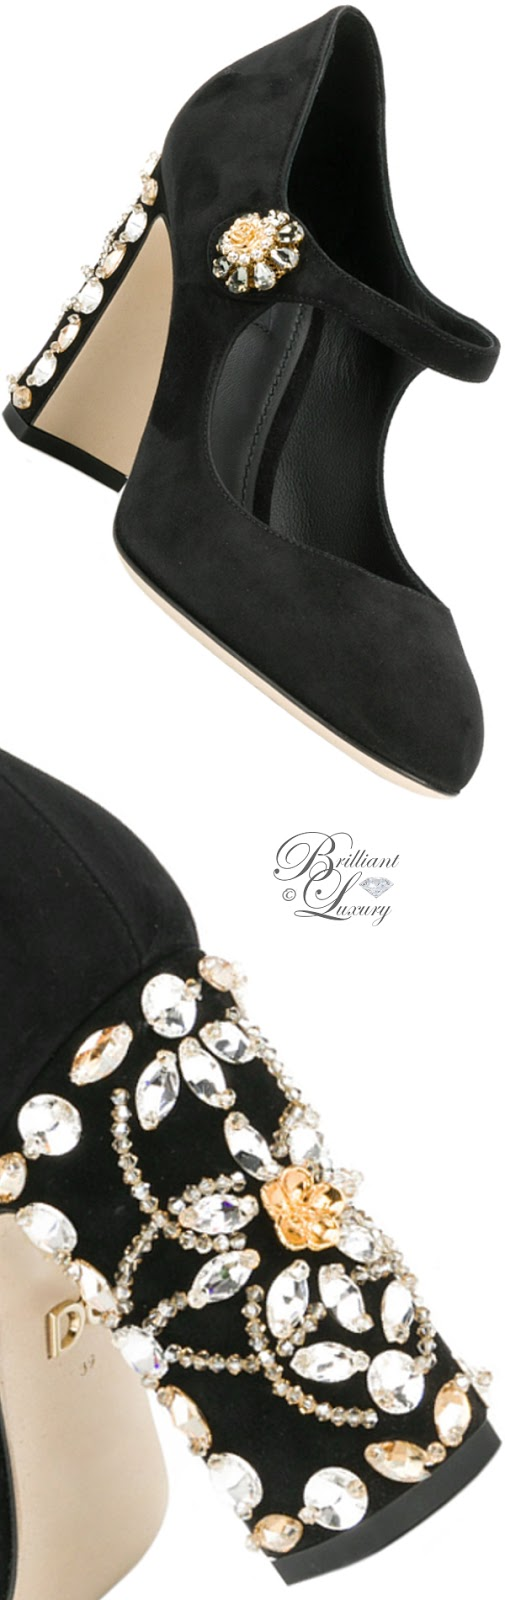 Brilliant Luxury ♦ Dolce & Gabbany Vally embellished pumps